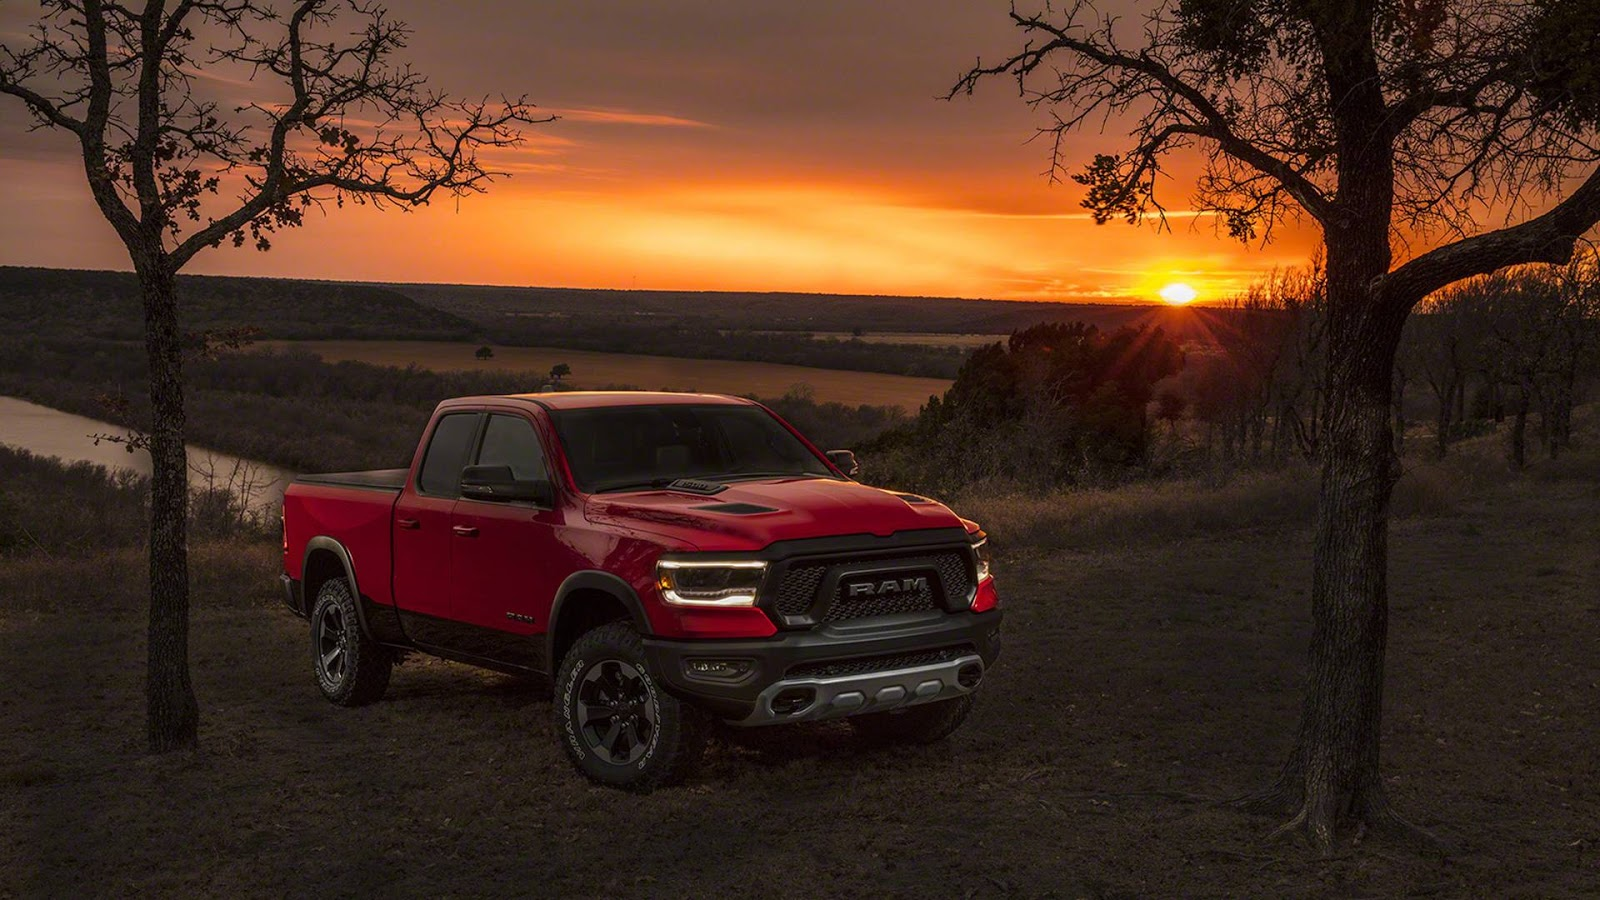 New Ram Truck >> 2019 Ram 1500 Pickup Goes Official With 48-Volt Mild-Hybrid System - autoevolution